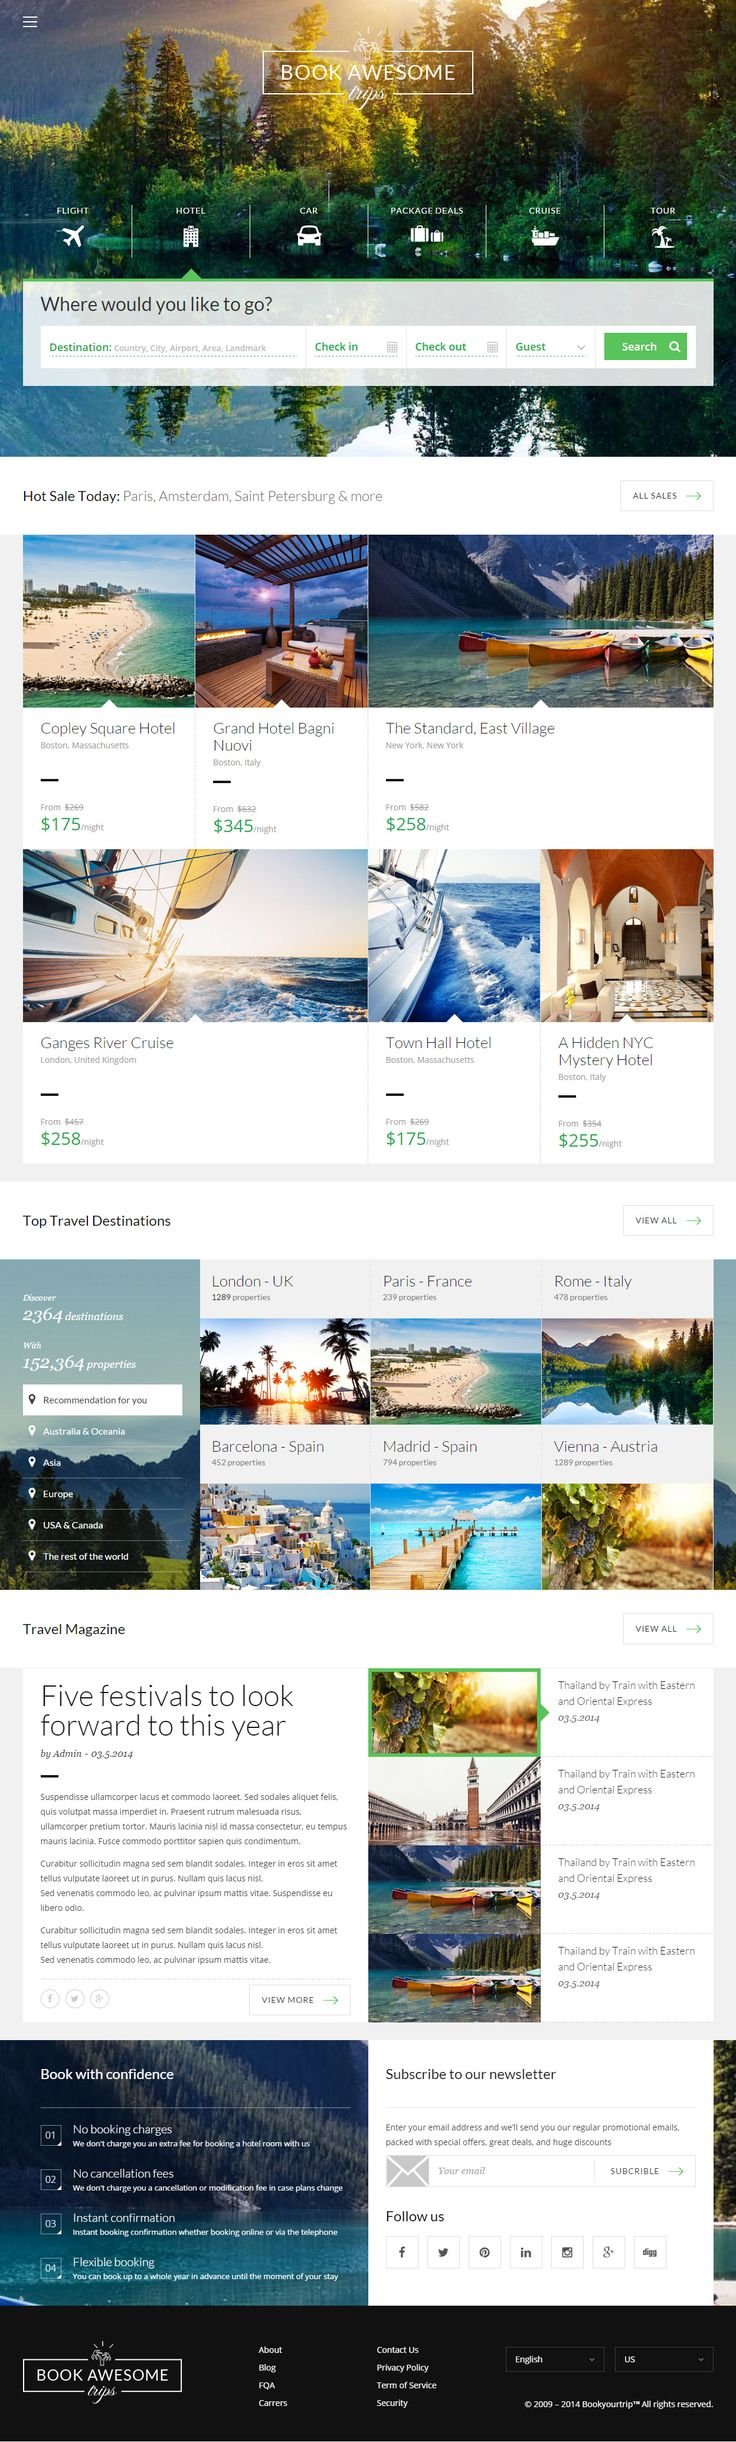 Book Awesome Trip is Premium full Responsive HTML5 Booking Template. Retina Ready. Bootstrap Framework. Parallax Scrolling. Test free demo at: http://www.responsivemiracle.com/cms/book-awesome-trip-premium-responsive-travel-booking-html5-template/